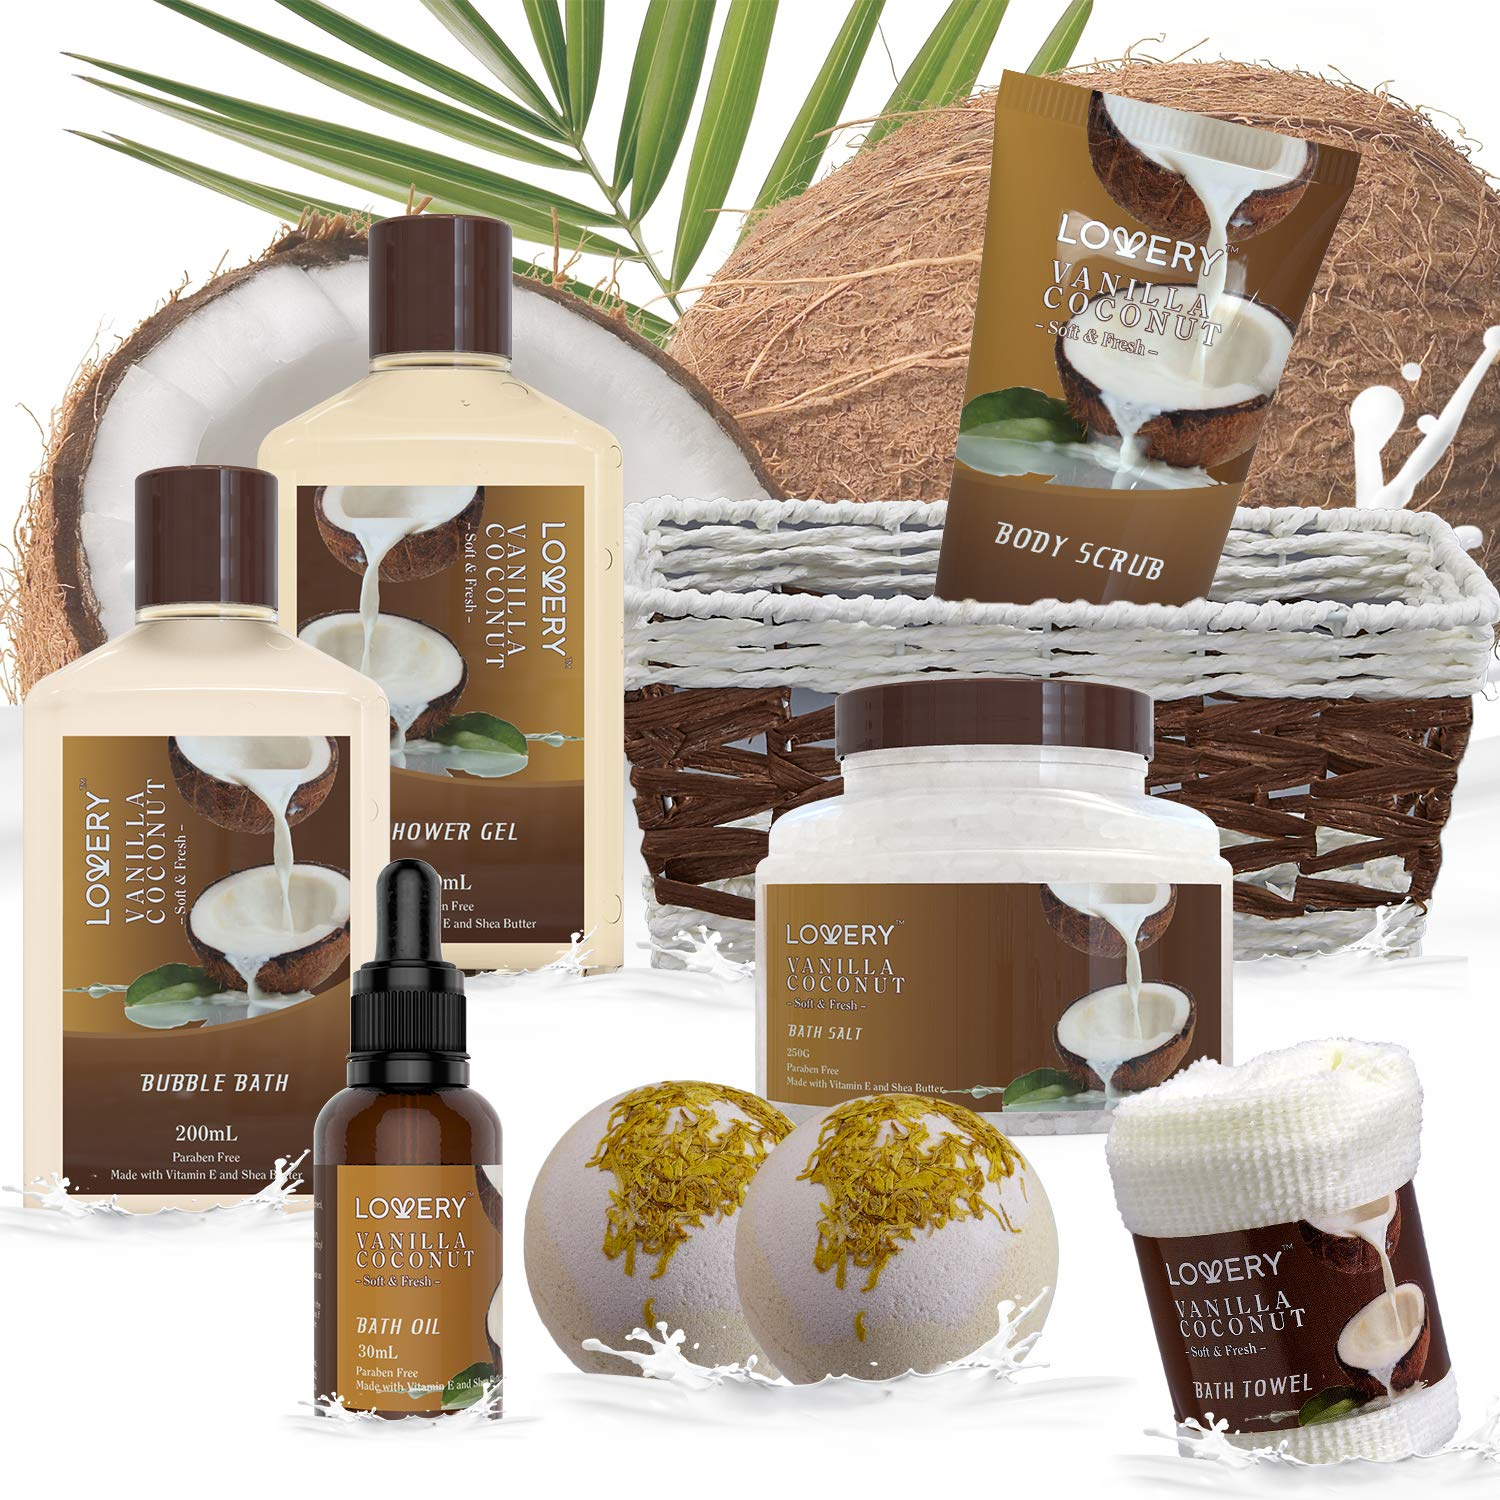 Bath and Body Gift Basket For Women and Men – 9 Piece Set of Vanilla Coconut Home Spa Set, Includes Fragrant Lotions, Extra Large Bath Bombs, Coconut Oil, Luxurious Bath Towel & More : Beauty